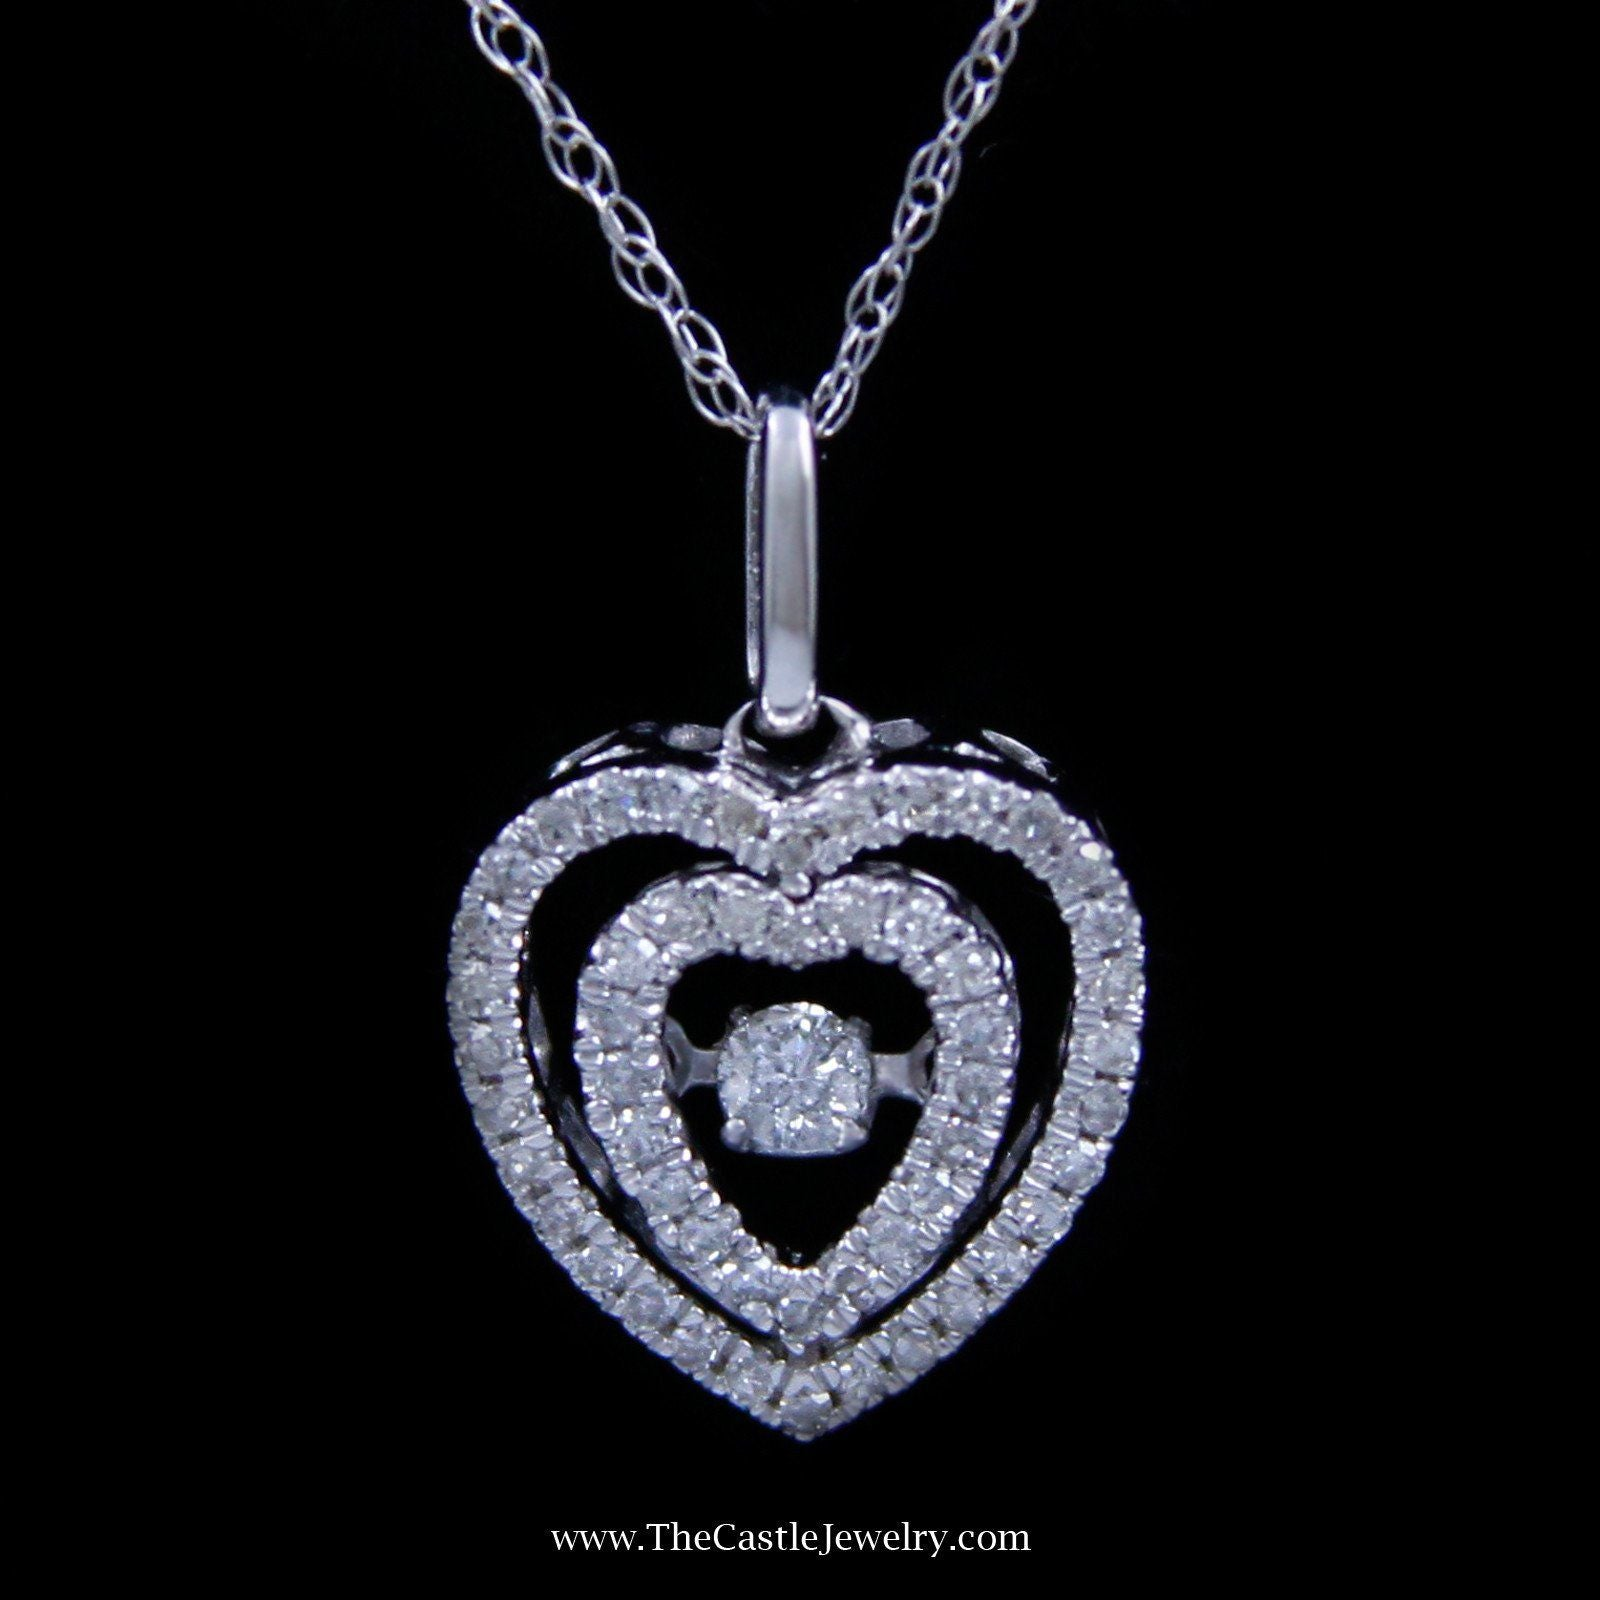 SPECIAL! Double Heart .18cttw Diamond Heart Beat Necklace in 10K White Gold